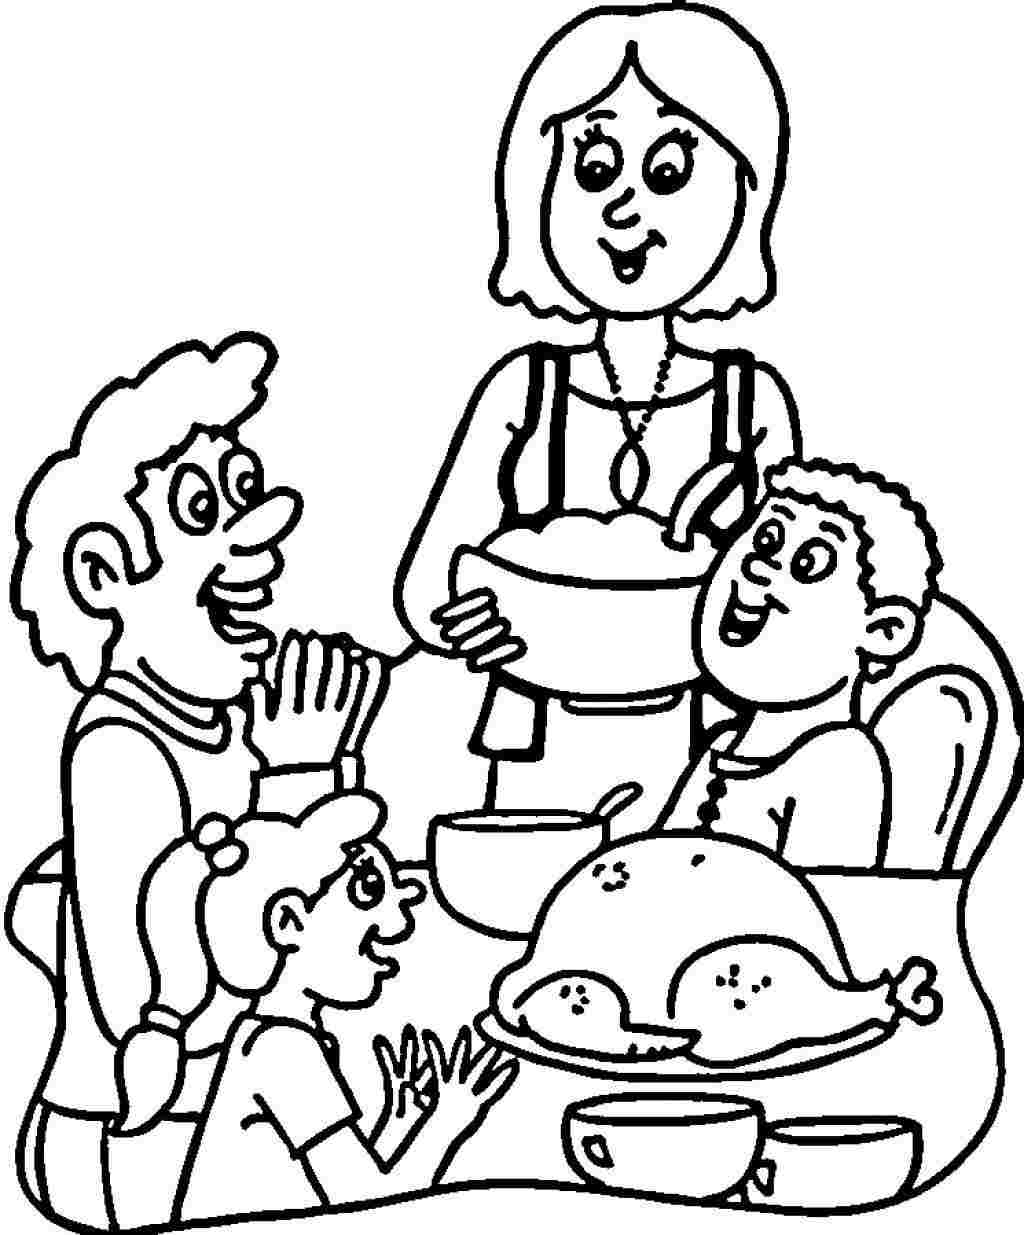 Thanksgiving Day Coloring Pages for childrens printable ...